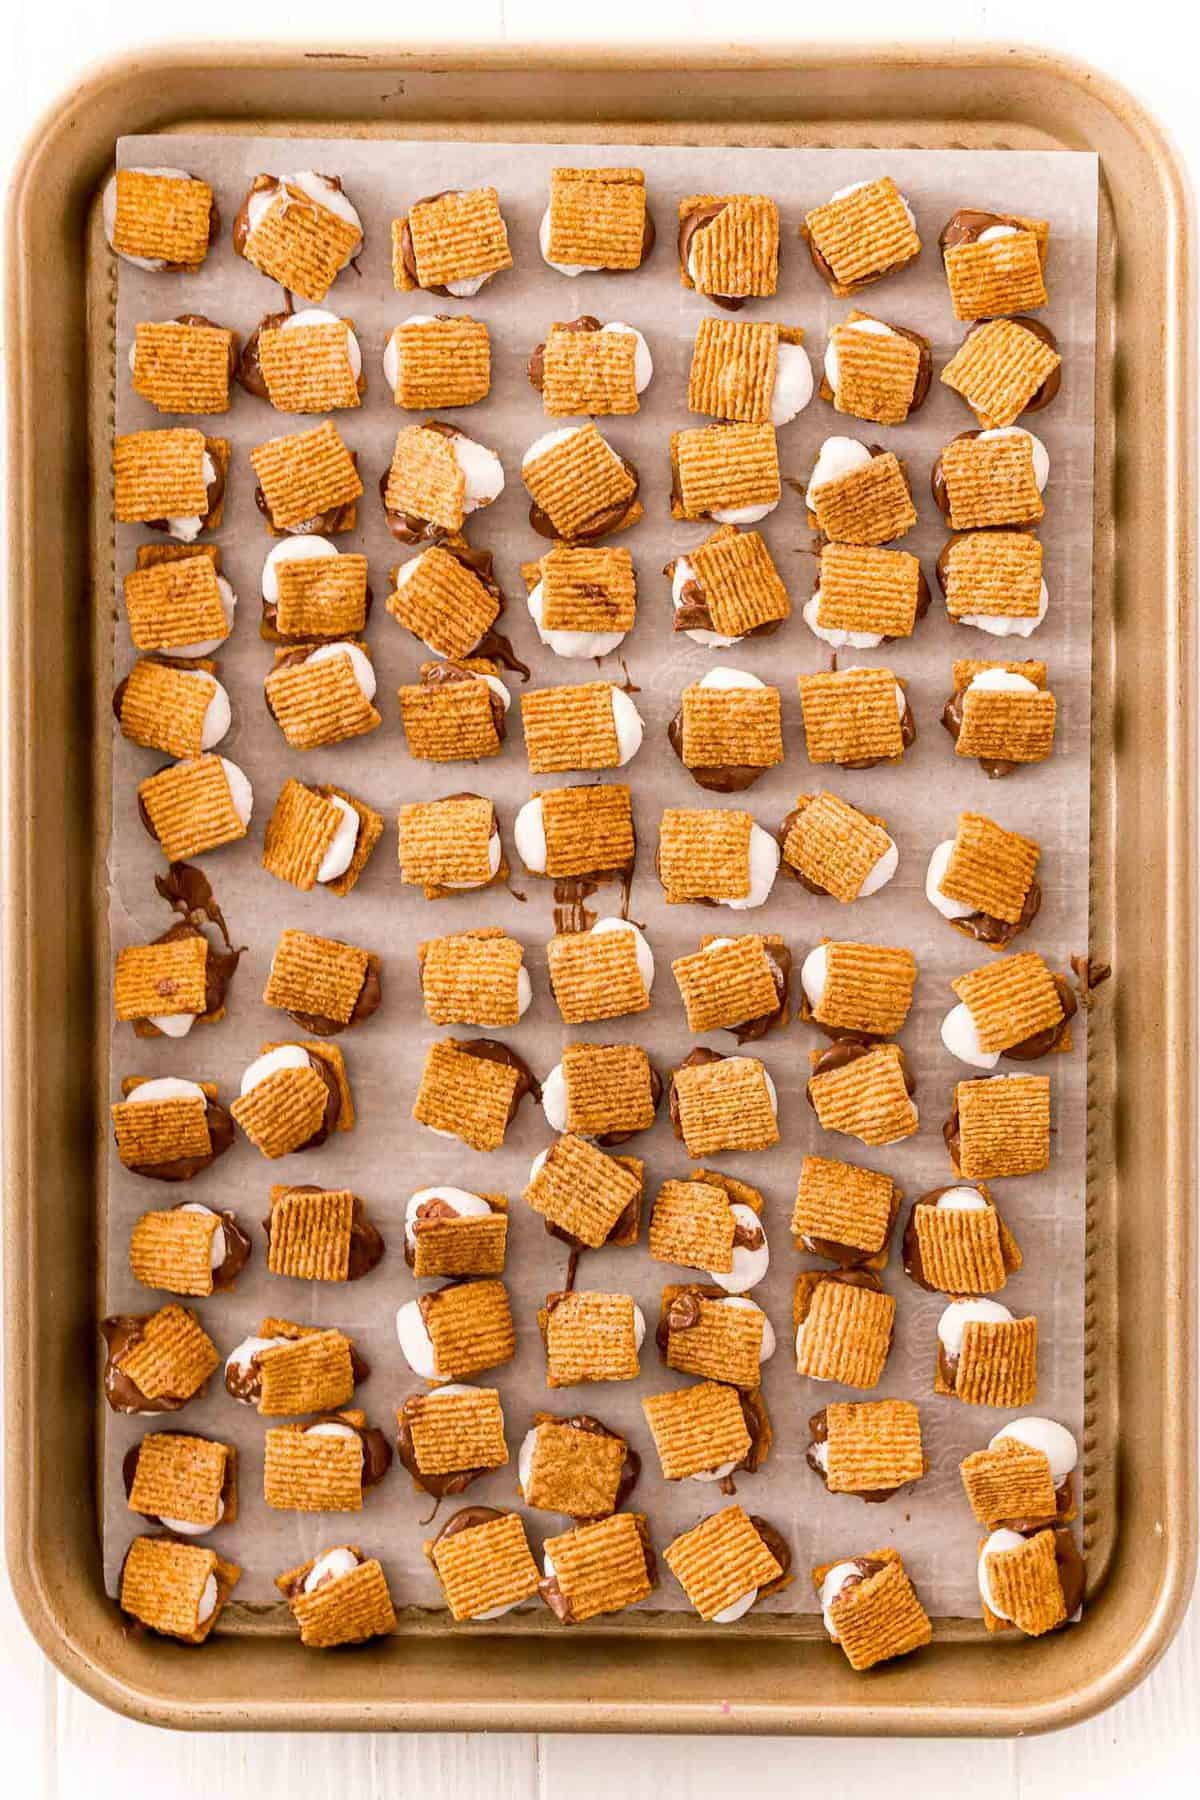 Tiny s'mores on a baking sheet.